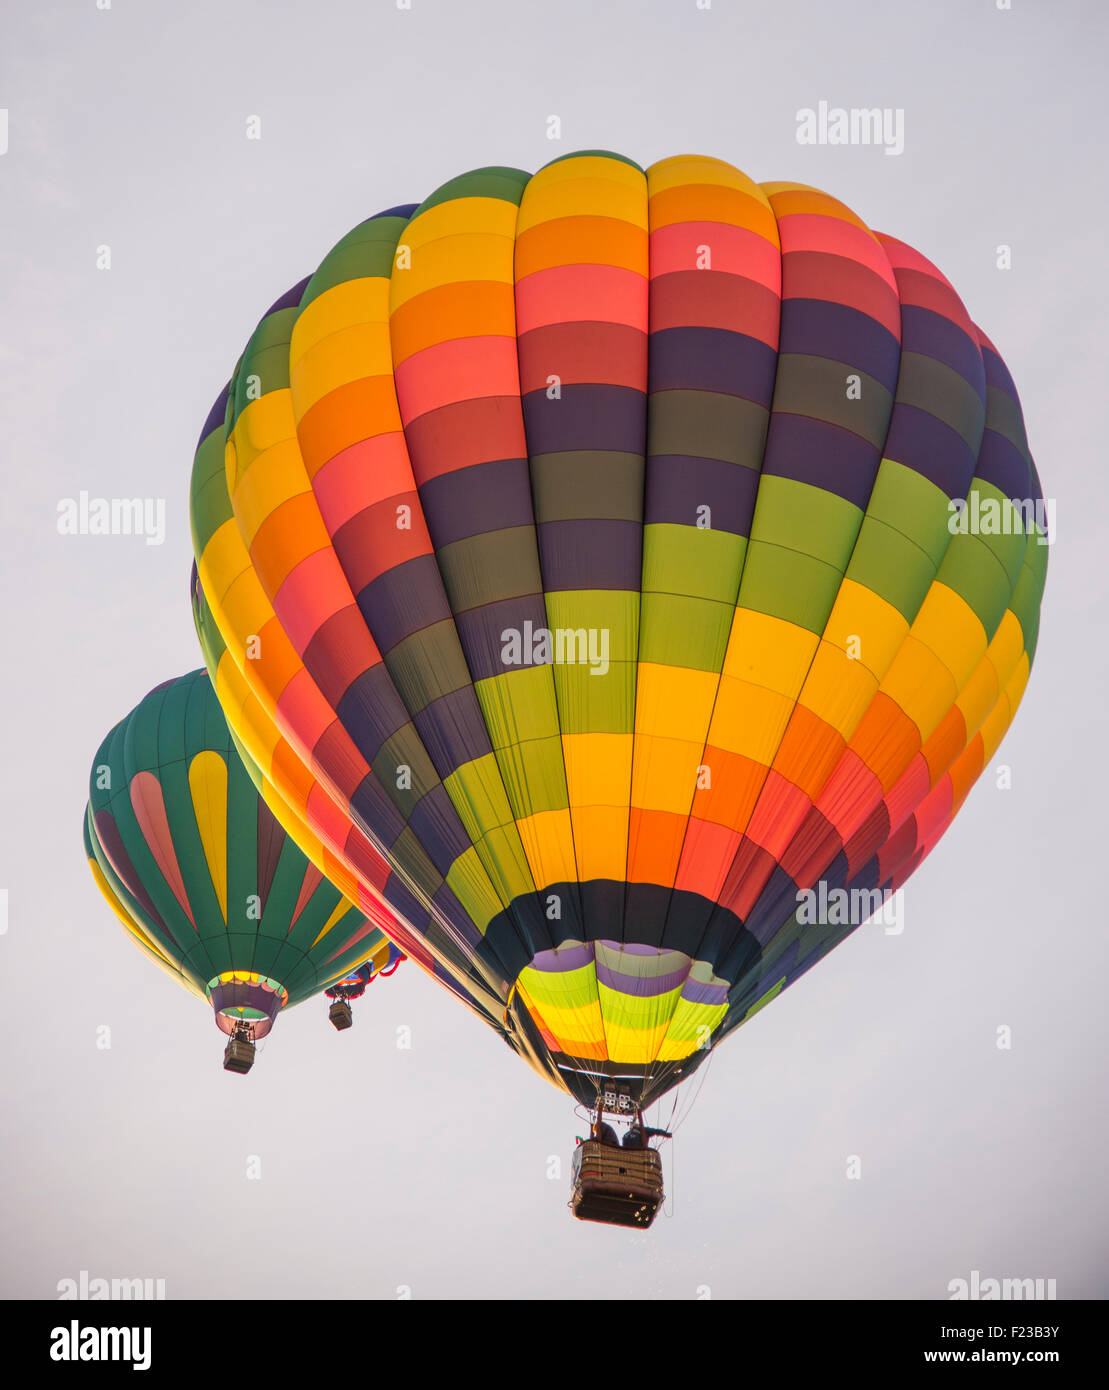 Hot Air Balloons, Spirit of Boise Balloon Classic, Ann Morrison Park, Boise, Idaho, USA Stock Photo